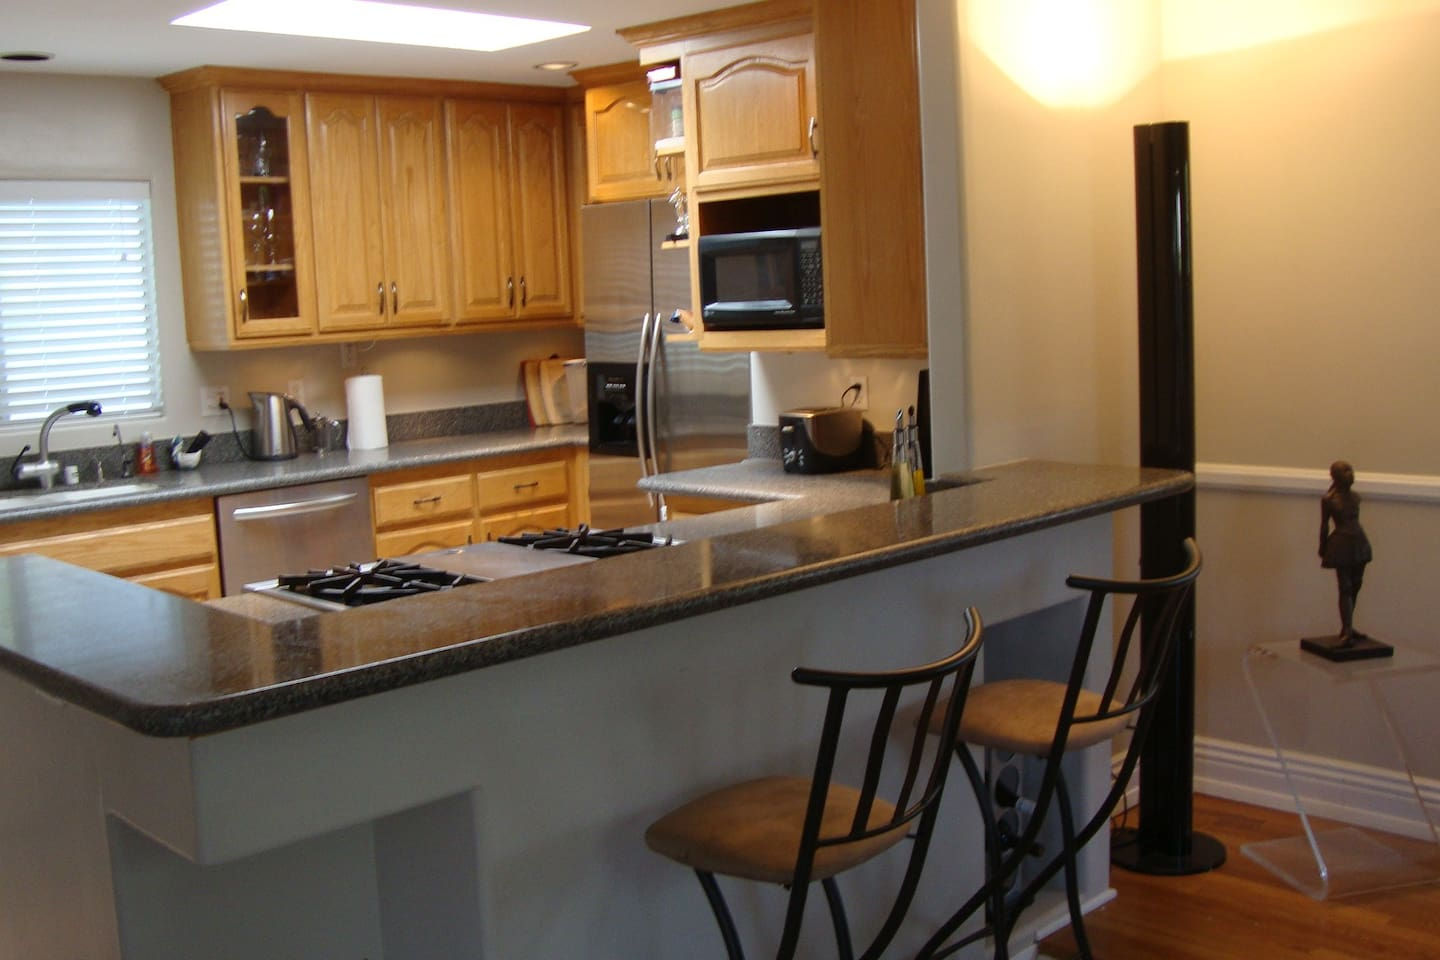 Fantastic kitchen with state of the art appliances, and open bar with stools.